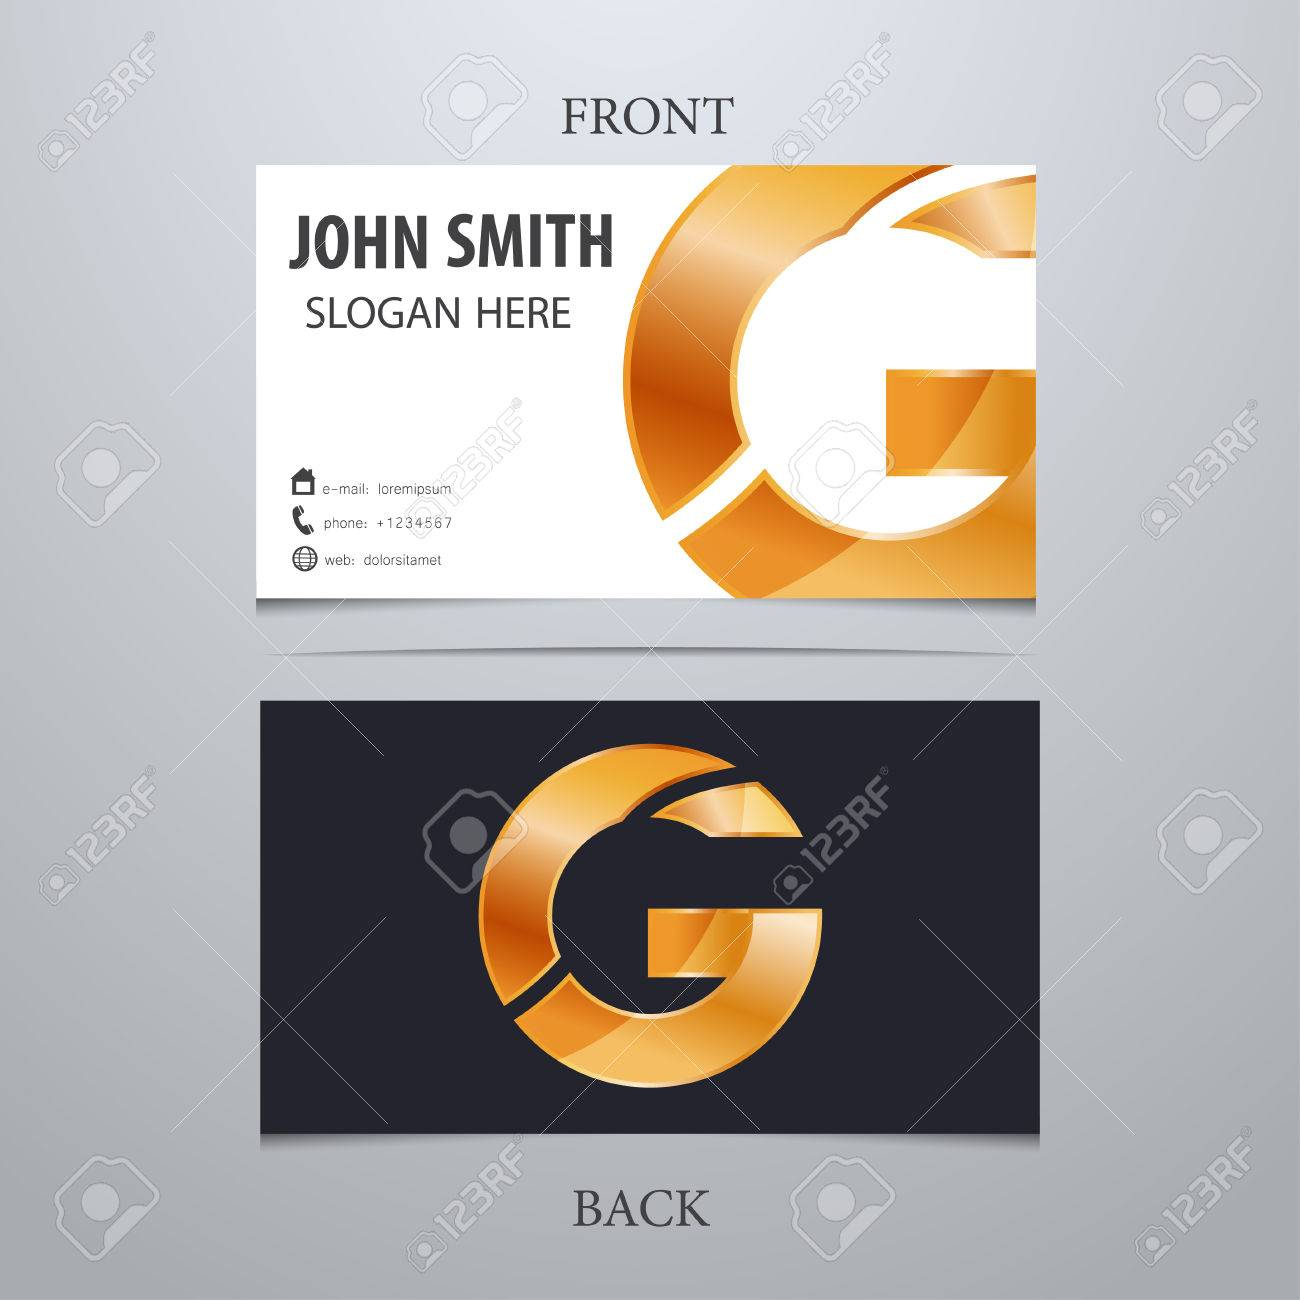 Vector gold metallic business card template letter g trendy banco de imagens vector gold metallic business card template letter g trendy business elements reheart Gallery